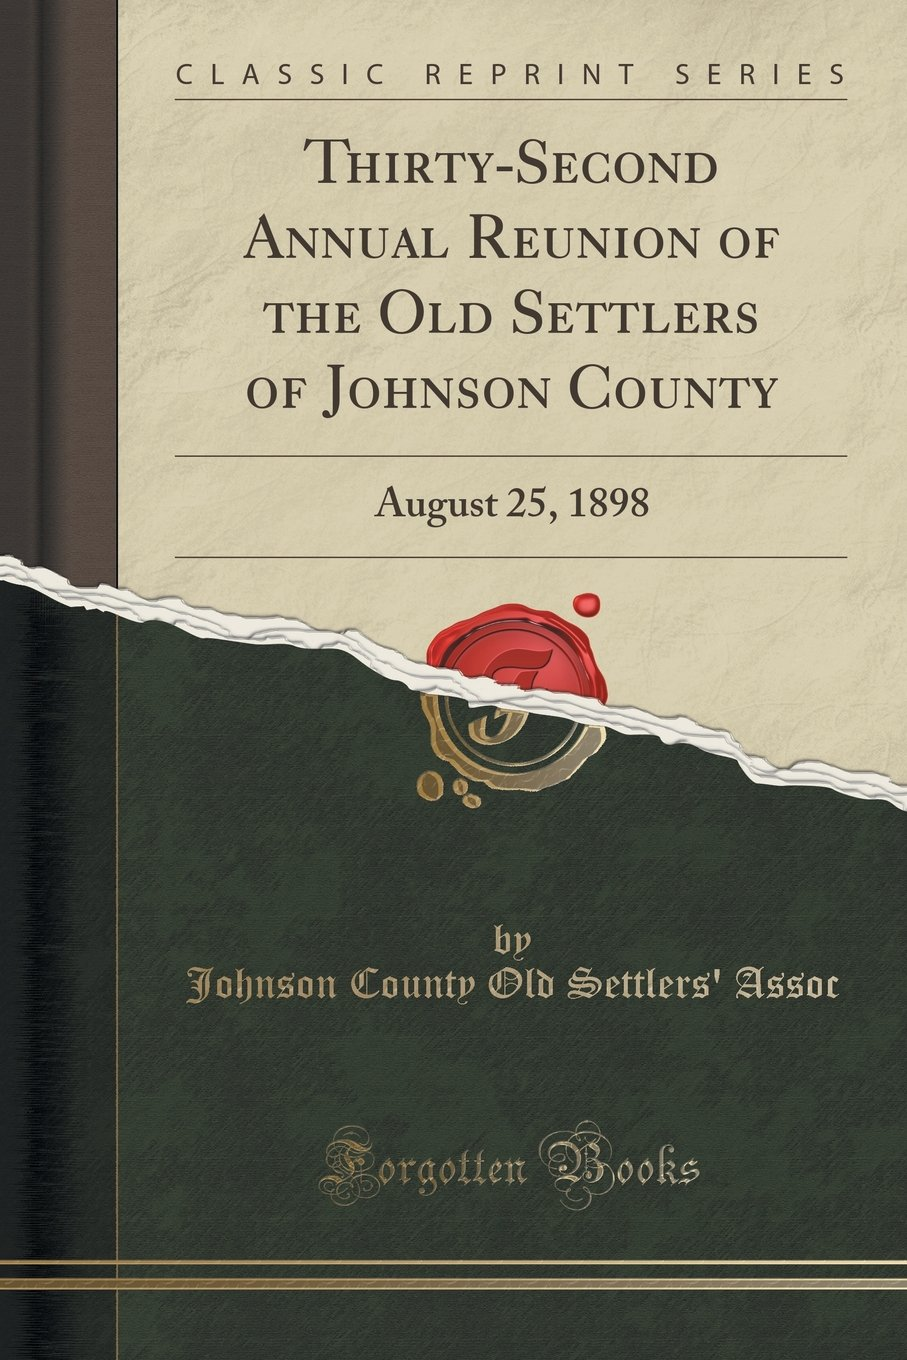 Download Thirty-Second Annual Reunion of the Old Settlers of Johnson County: August 25, 1898 (Classic Reprint) ebook